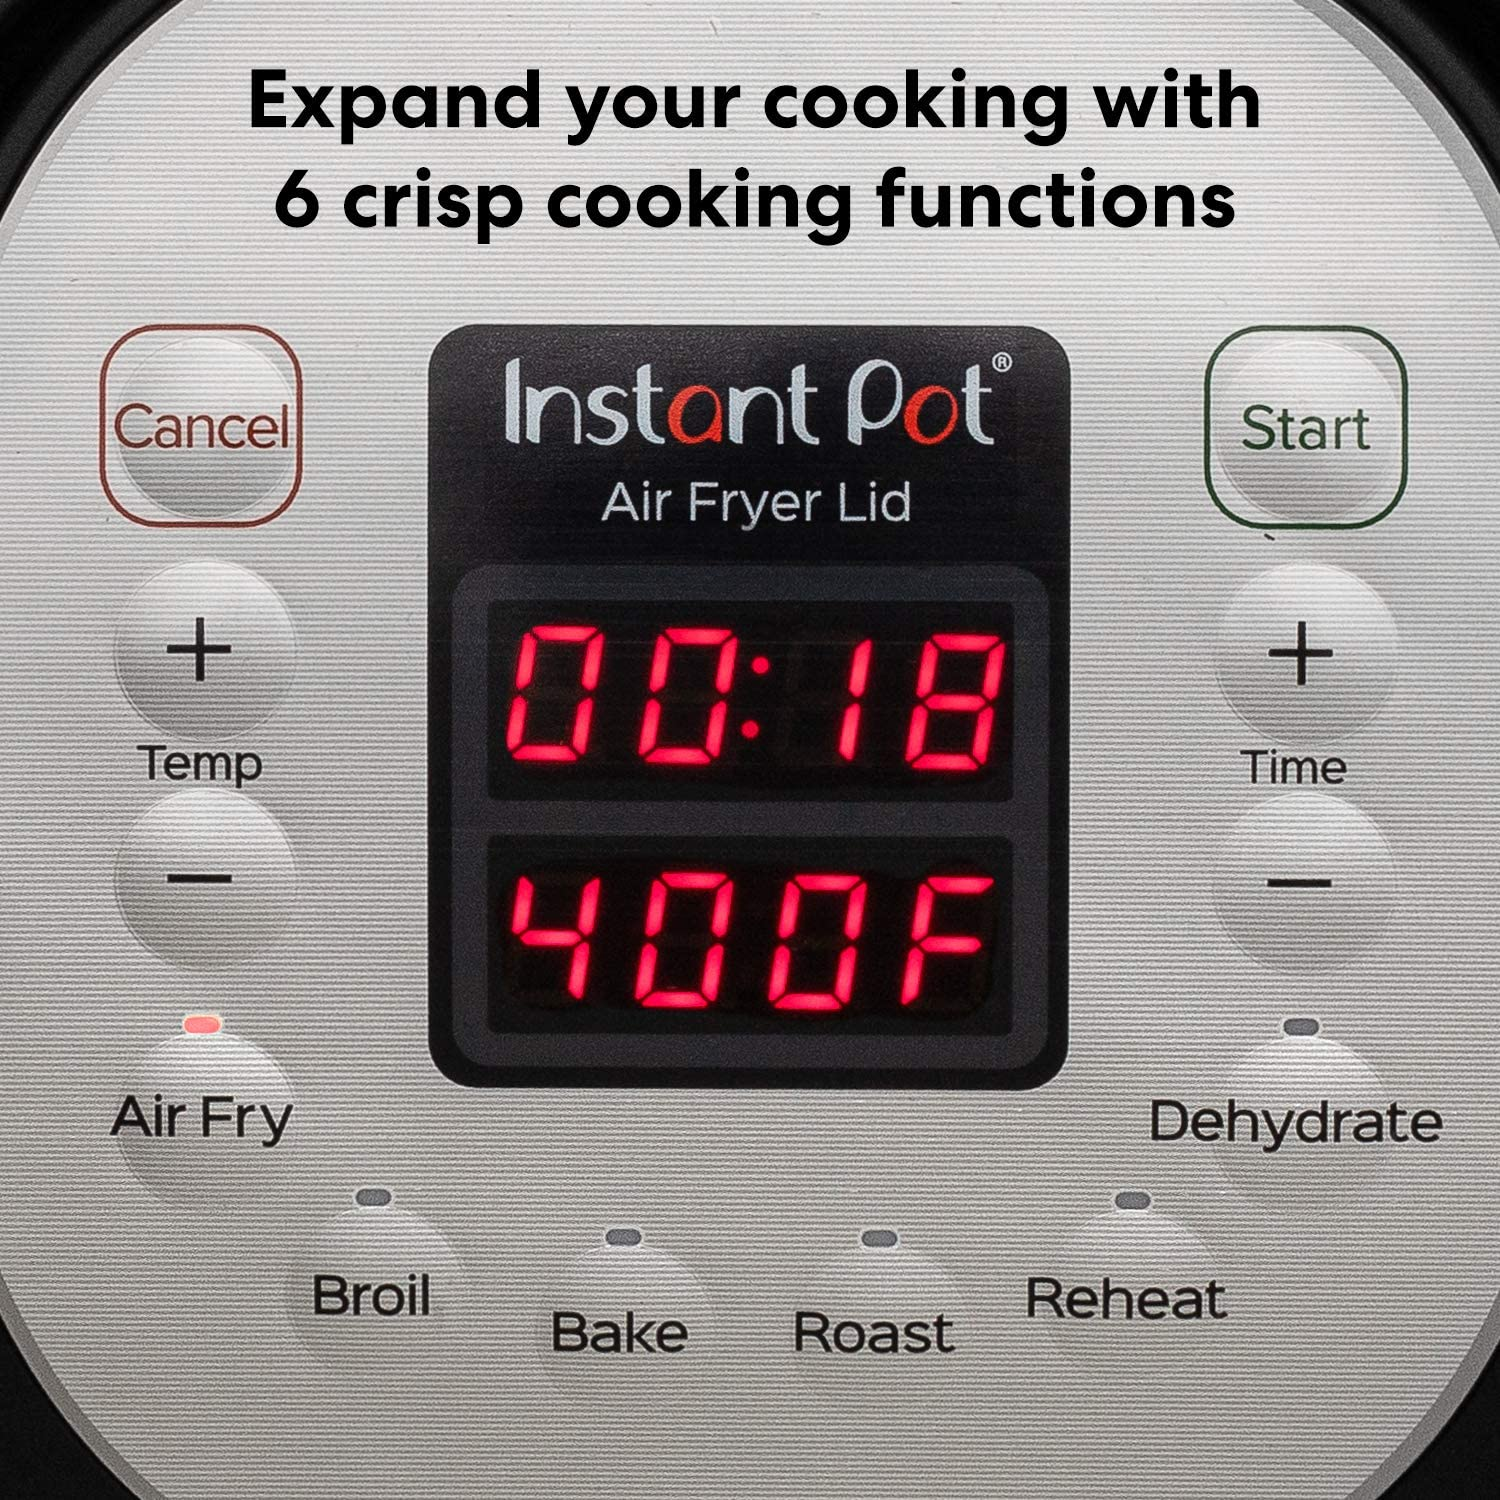 Instant Pot Air Fryer Lid - Cooking Functions and Buttons